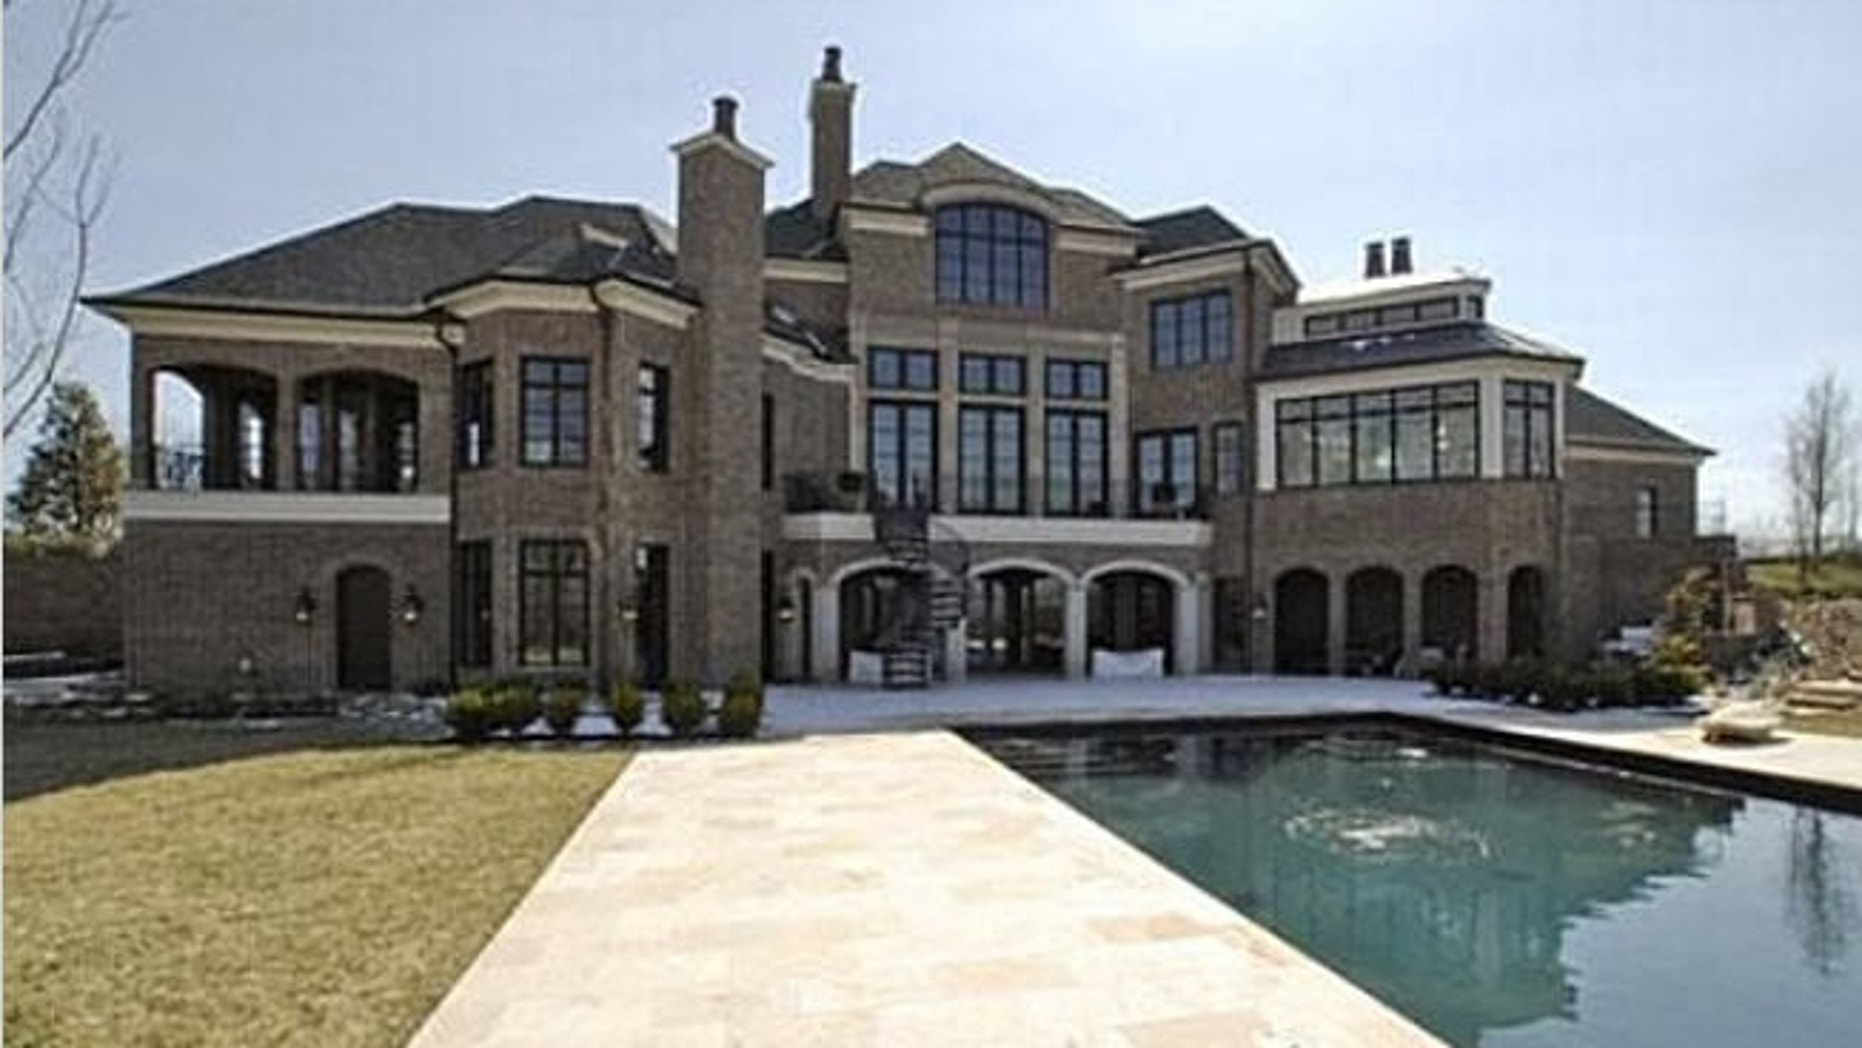 LeAnn Rimes' home with her former husband. (Zillow.com)